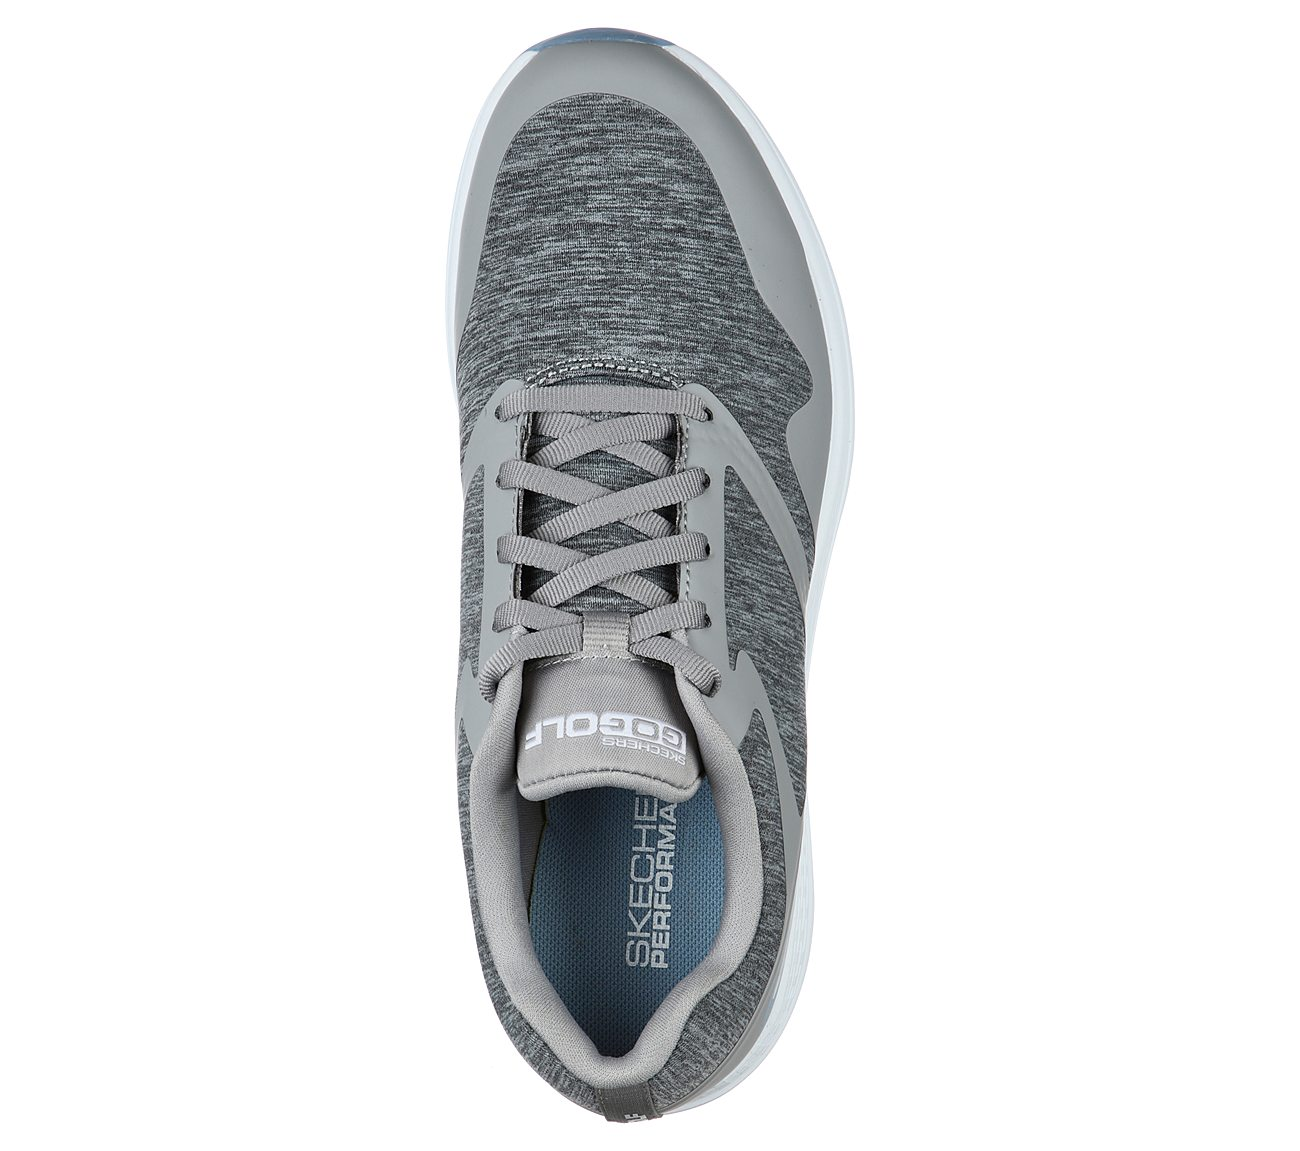 d7cfbe310 Skechers GO GOLF Max - Cut. Click tap to zoom · Alternate View 1 ·  Alternate View 2 · Alternate View 3